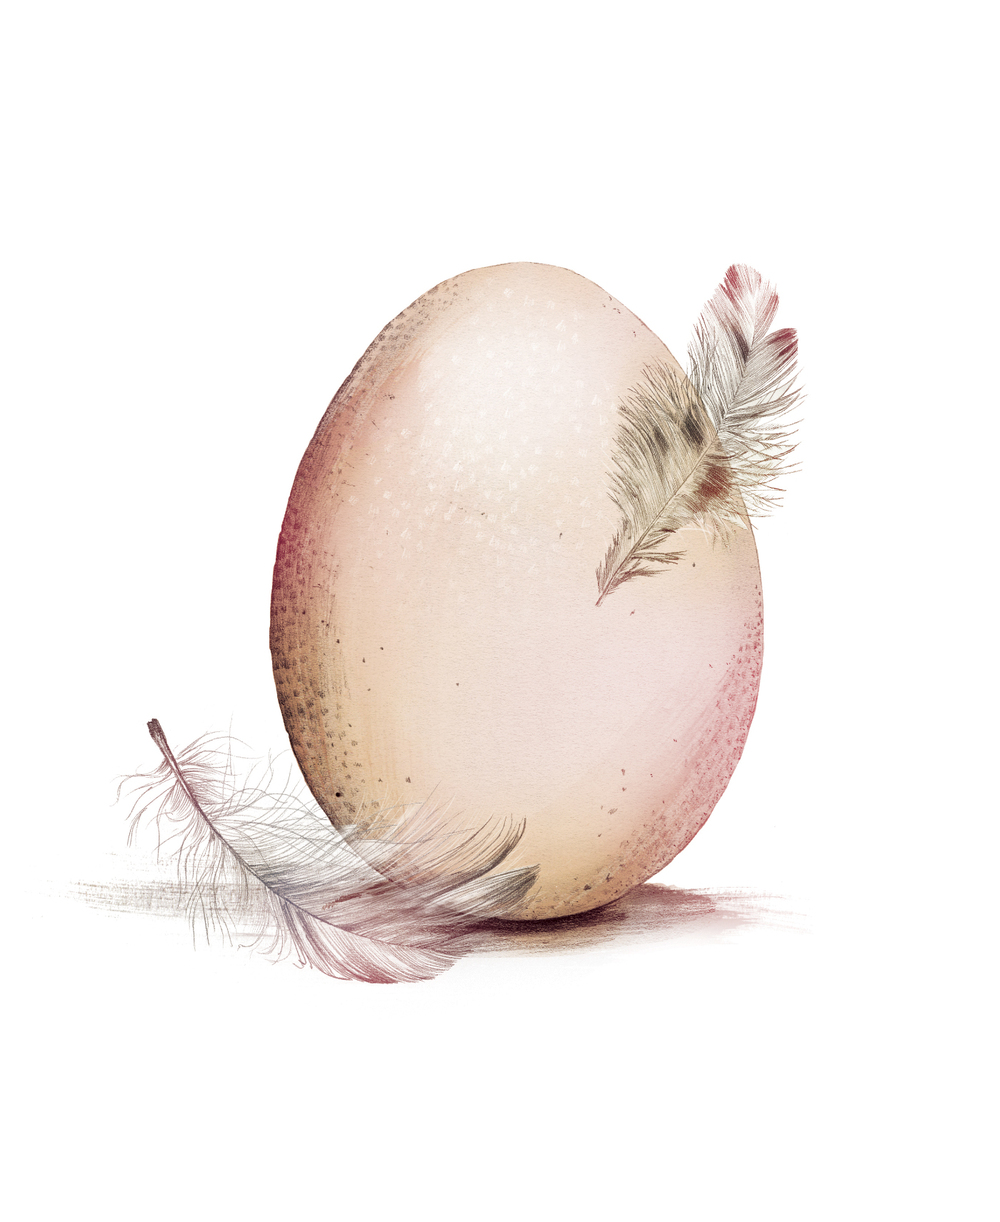 fig. 3. Egg and feather illustration